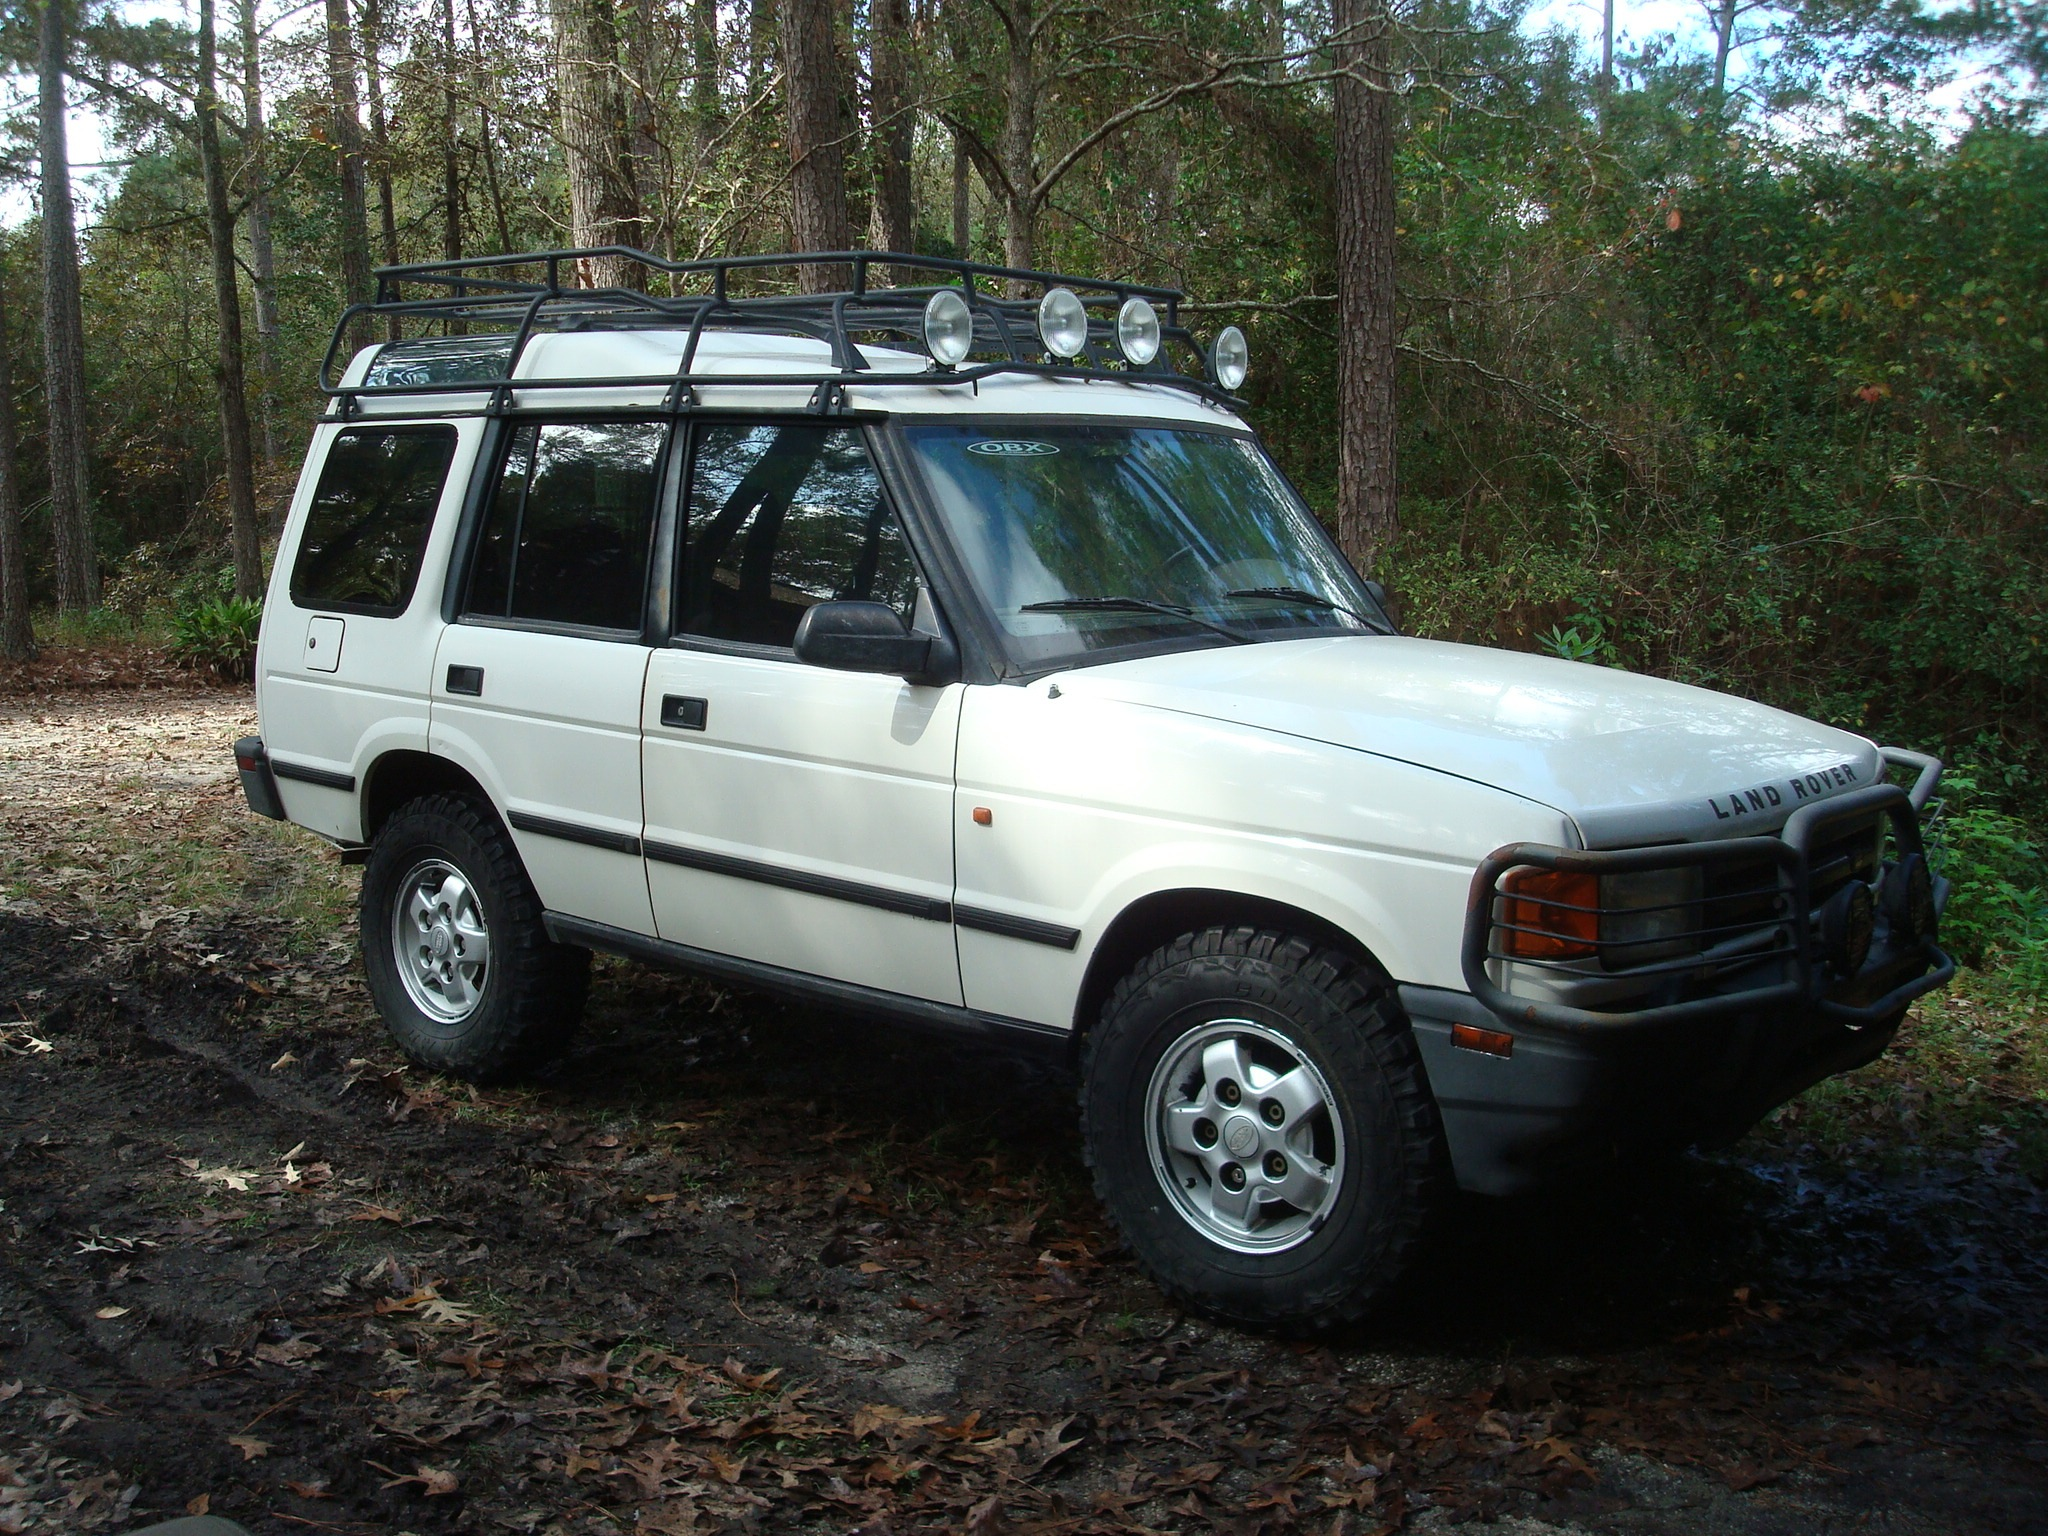 1995 Land Rover Discovery 300Tdi R380 5 speed – DIY or we build